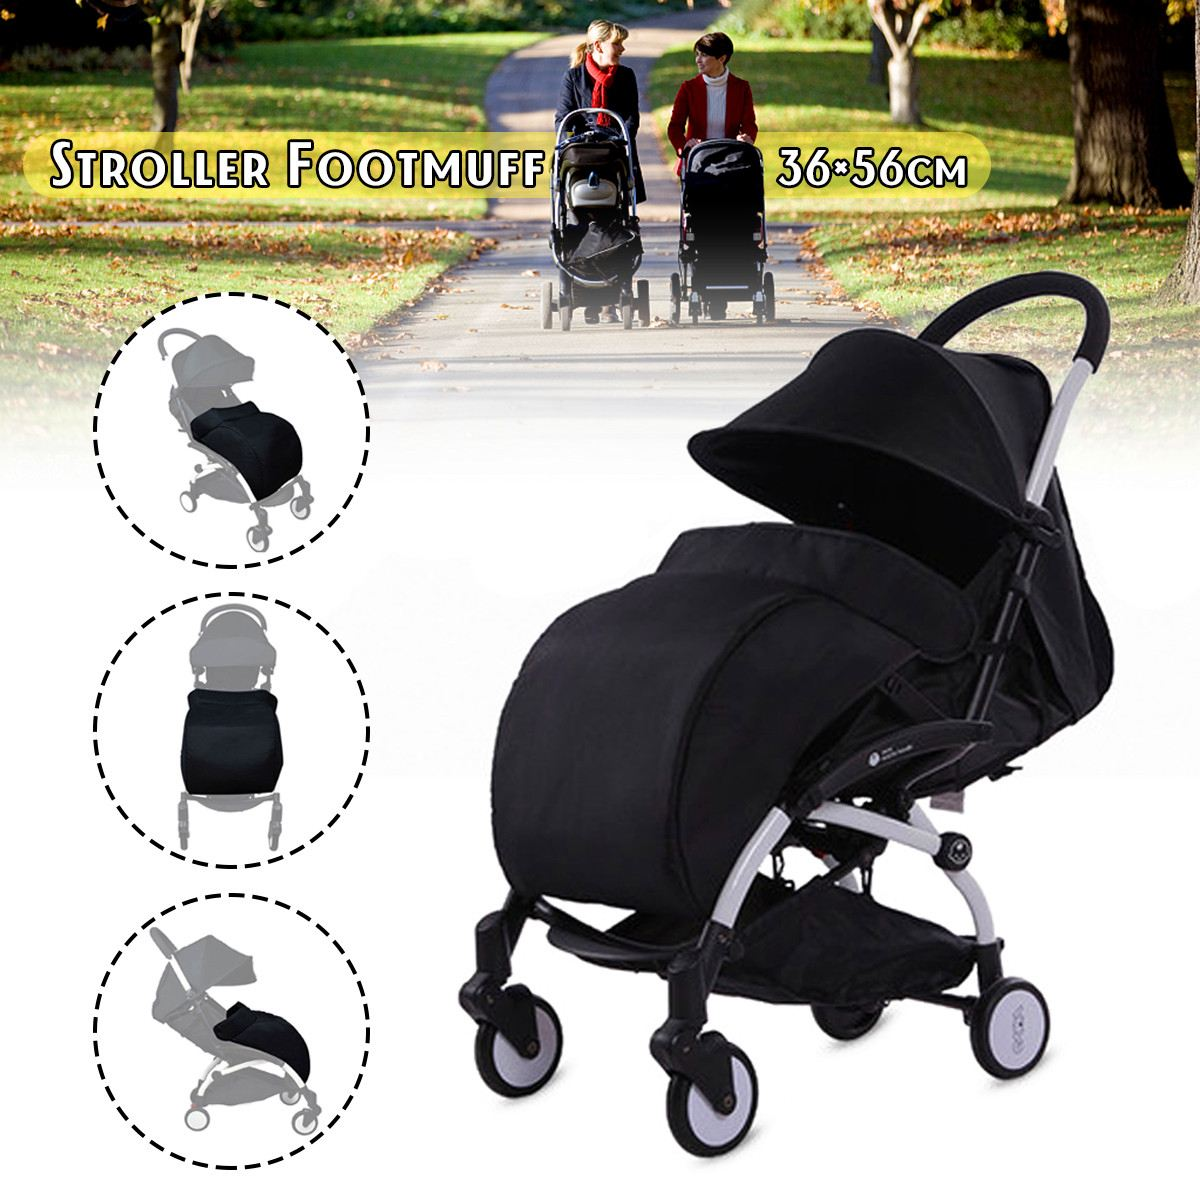 Footmuff for Carriages Pram Muff Case Bag Socks Pad Universal Baby Stroller Accessories Foot Cover Black